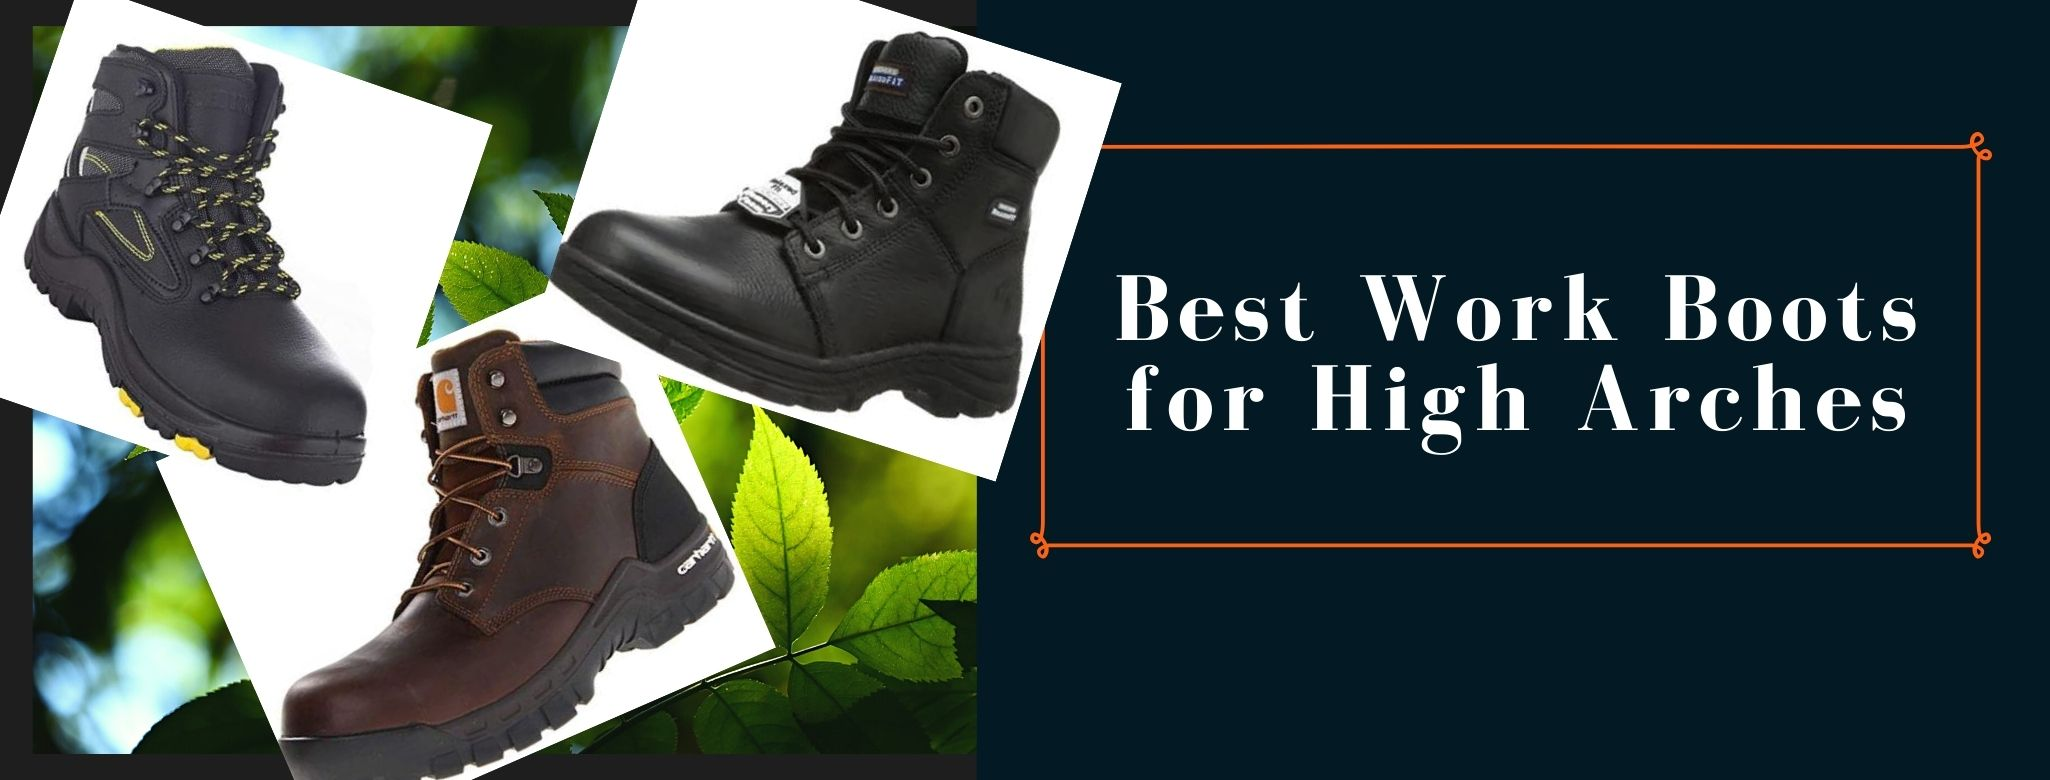 Top-rated boots for high-arched people